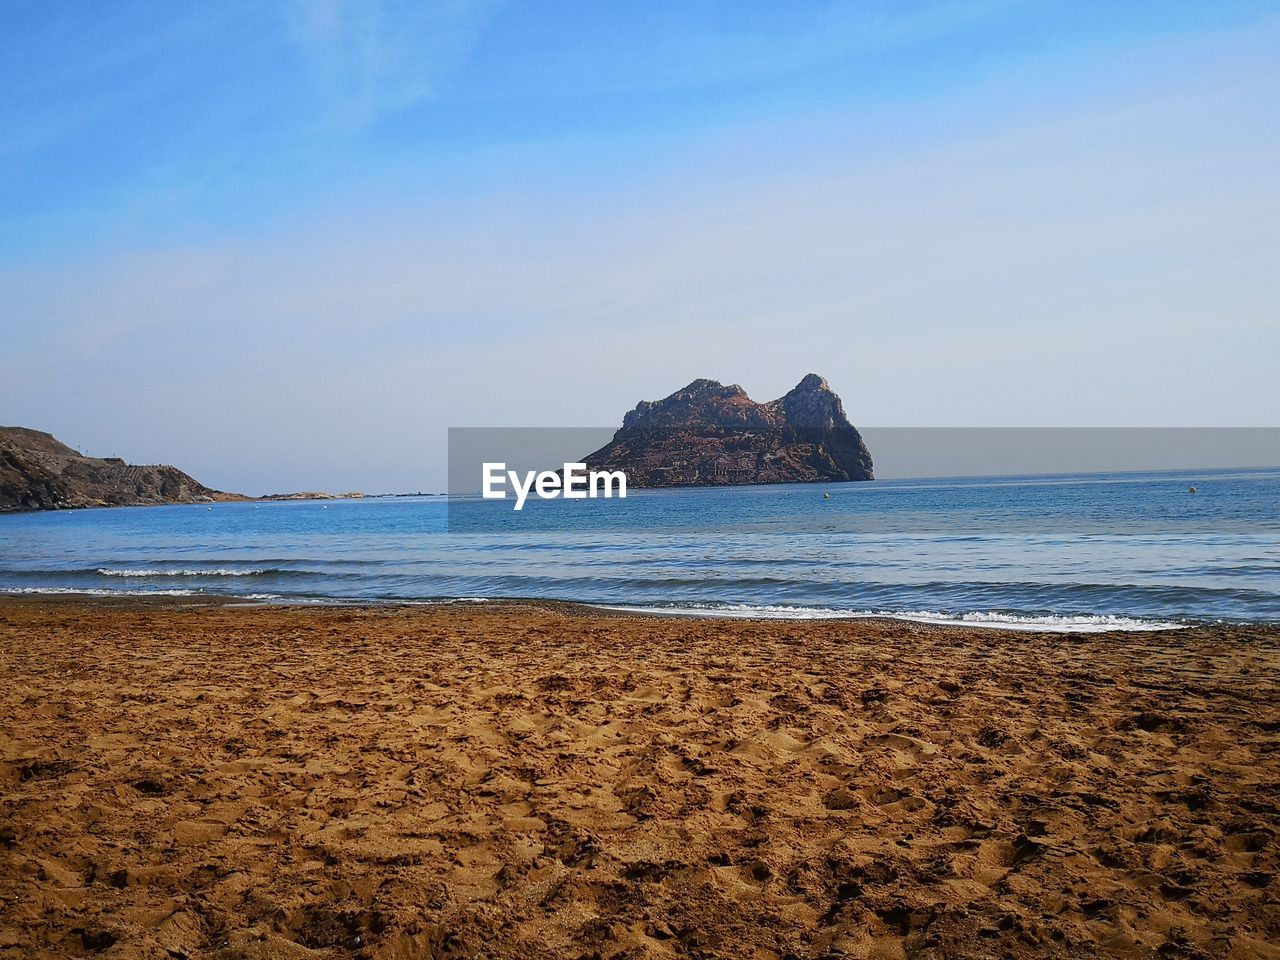 sea, sky, land, beach, water, scenics - nature, beauty in nature, tranquility, tranquil scene, no people, rock, horizon over water, blue, sand, nature, horizon, rock - object, rock formation, non-urban scene, outdoors, stack rock